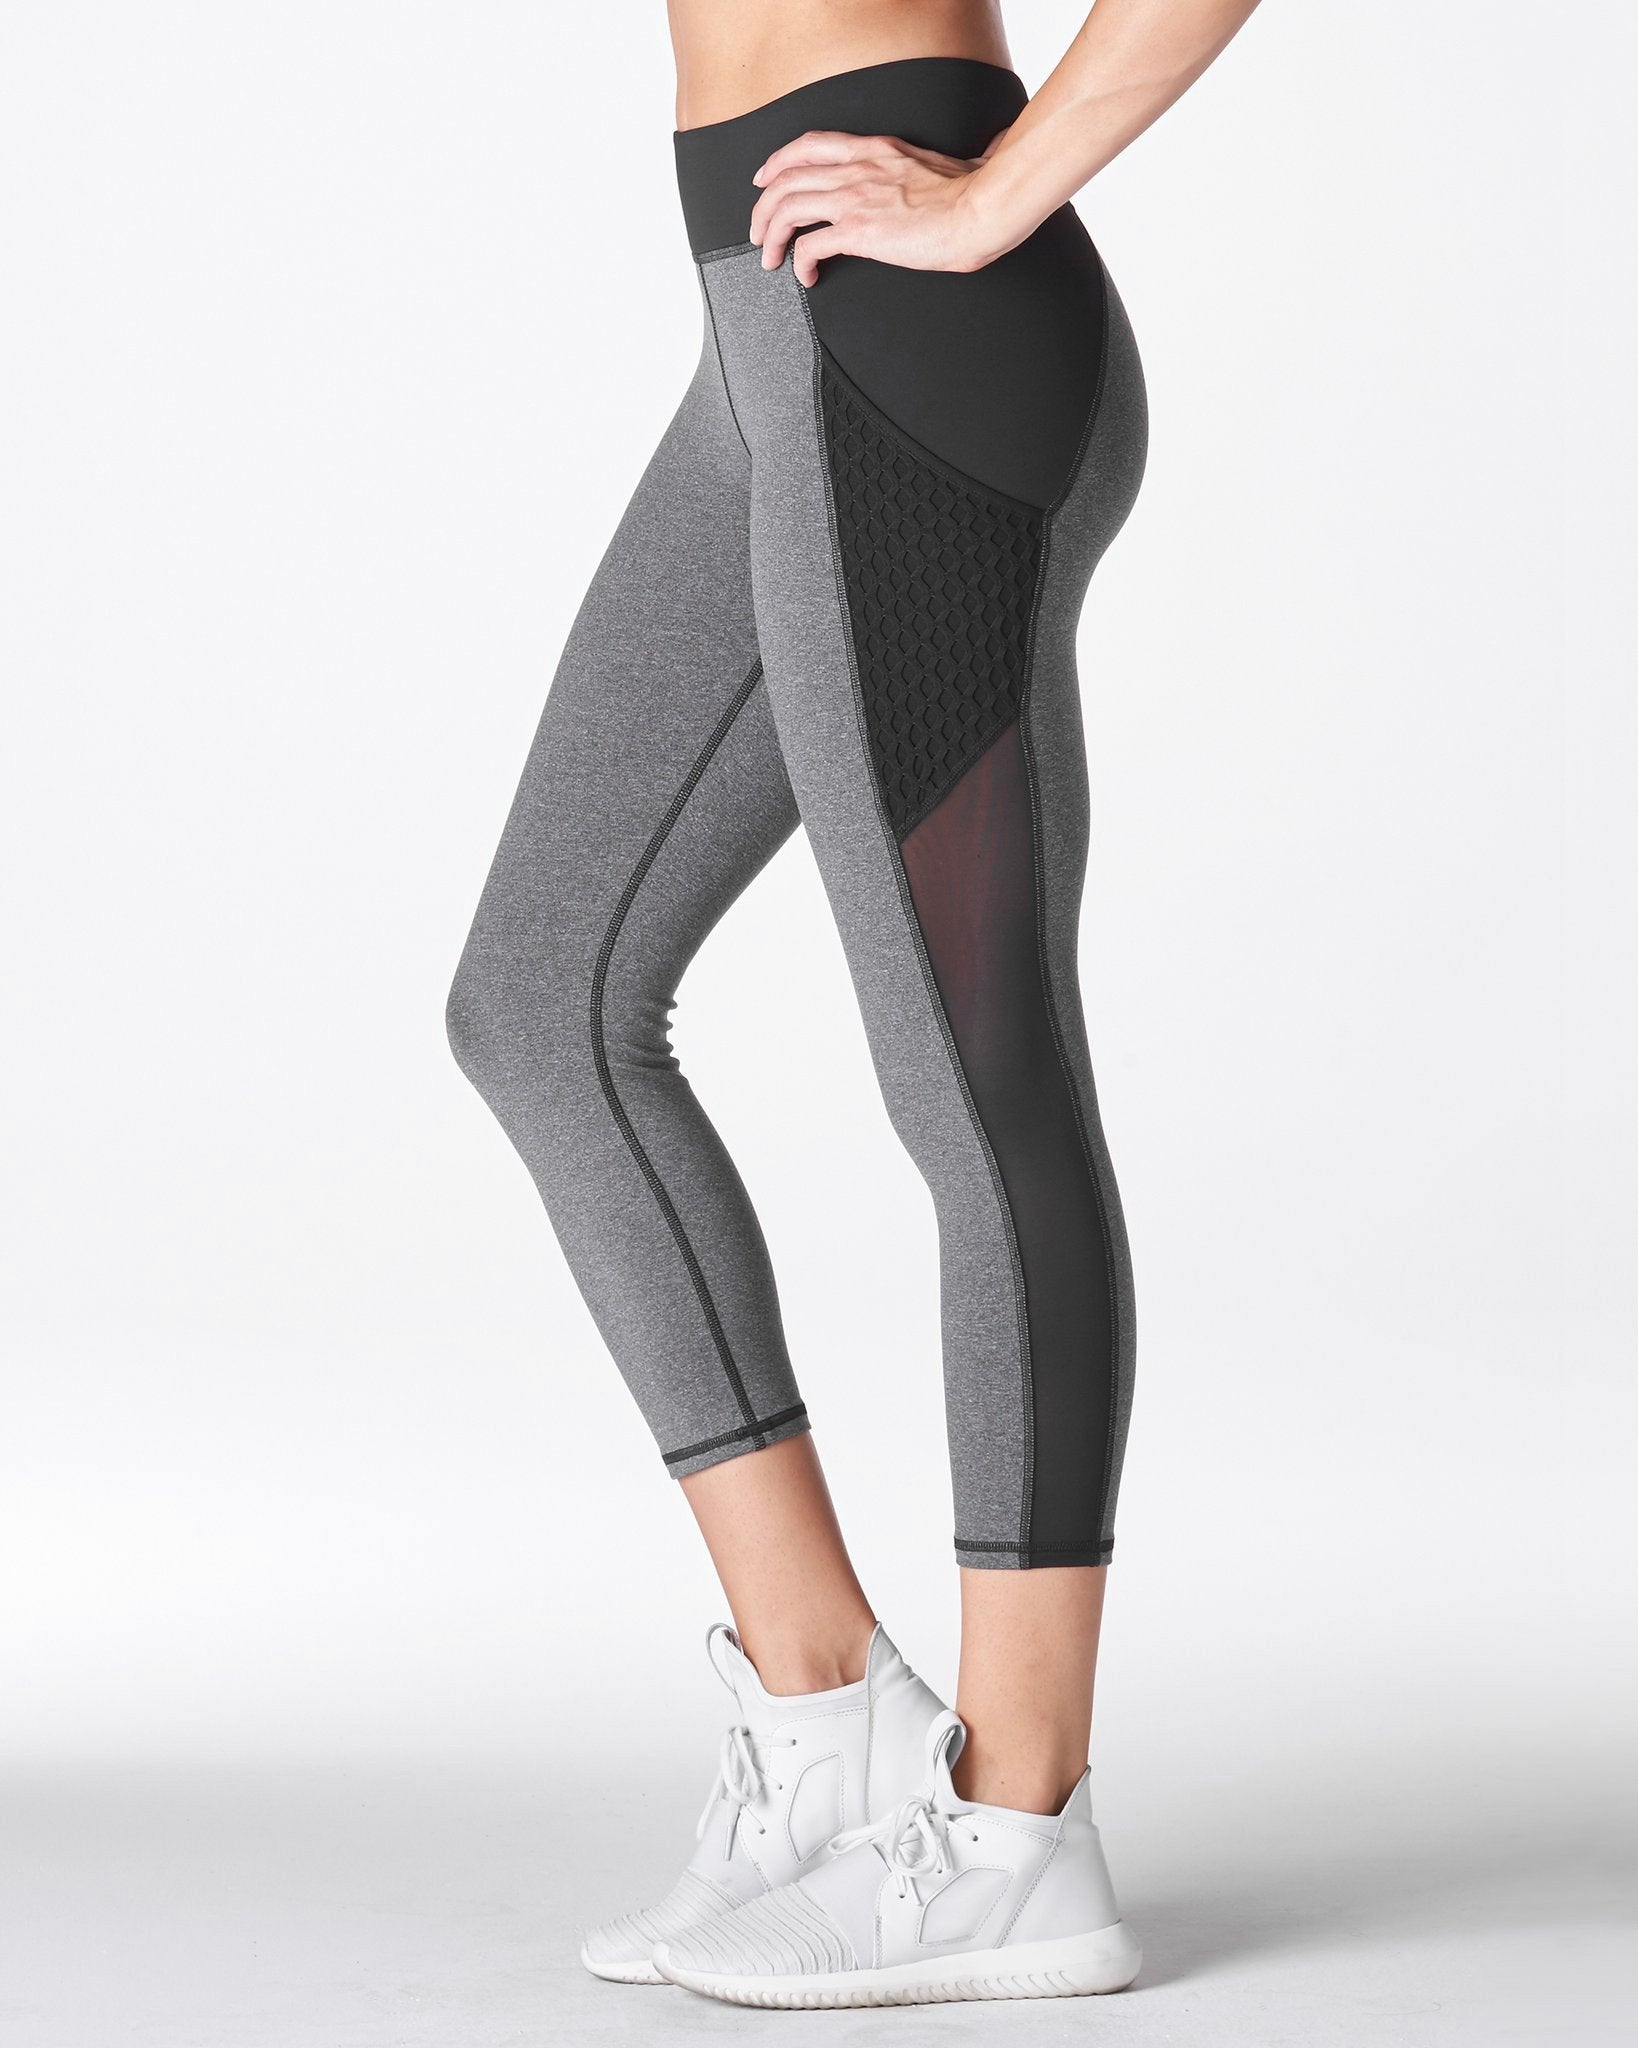 Stardust Crop Legging w/ Pocket - Heather Grey